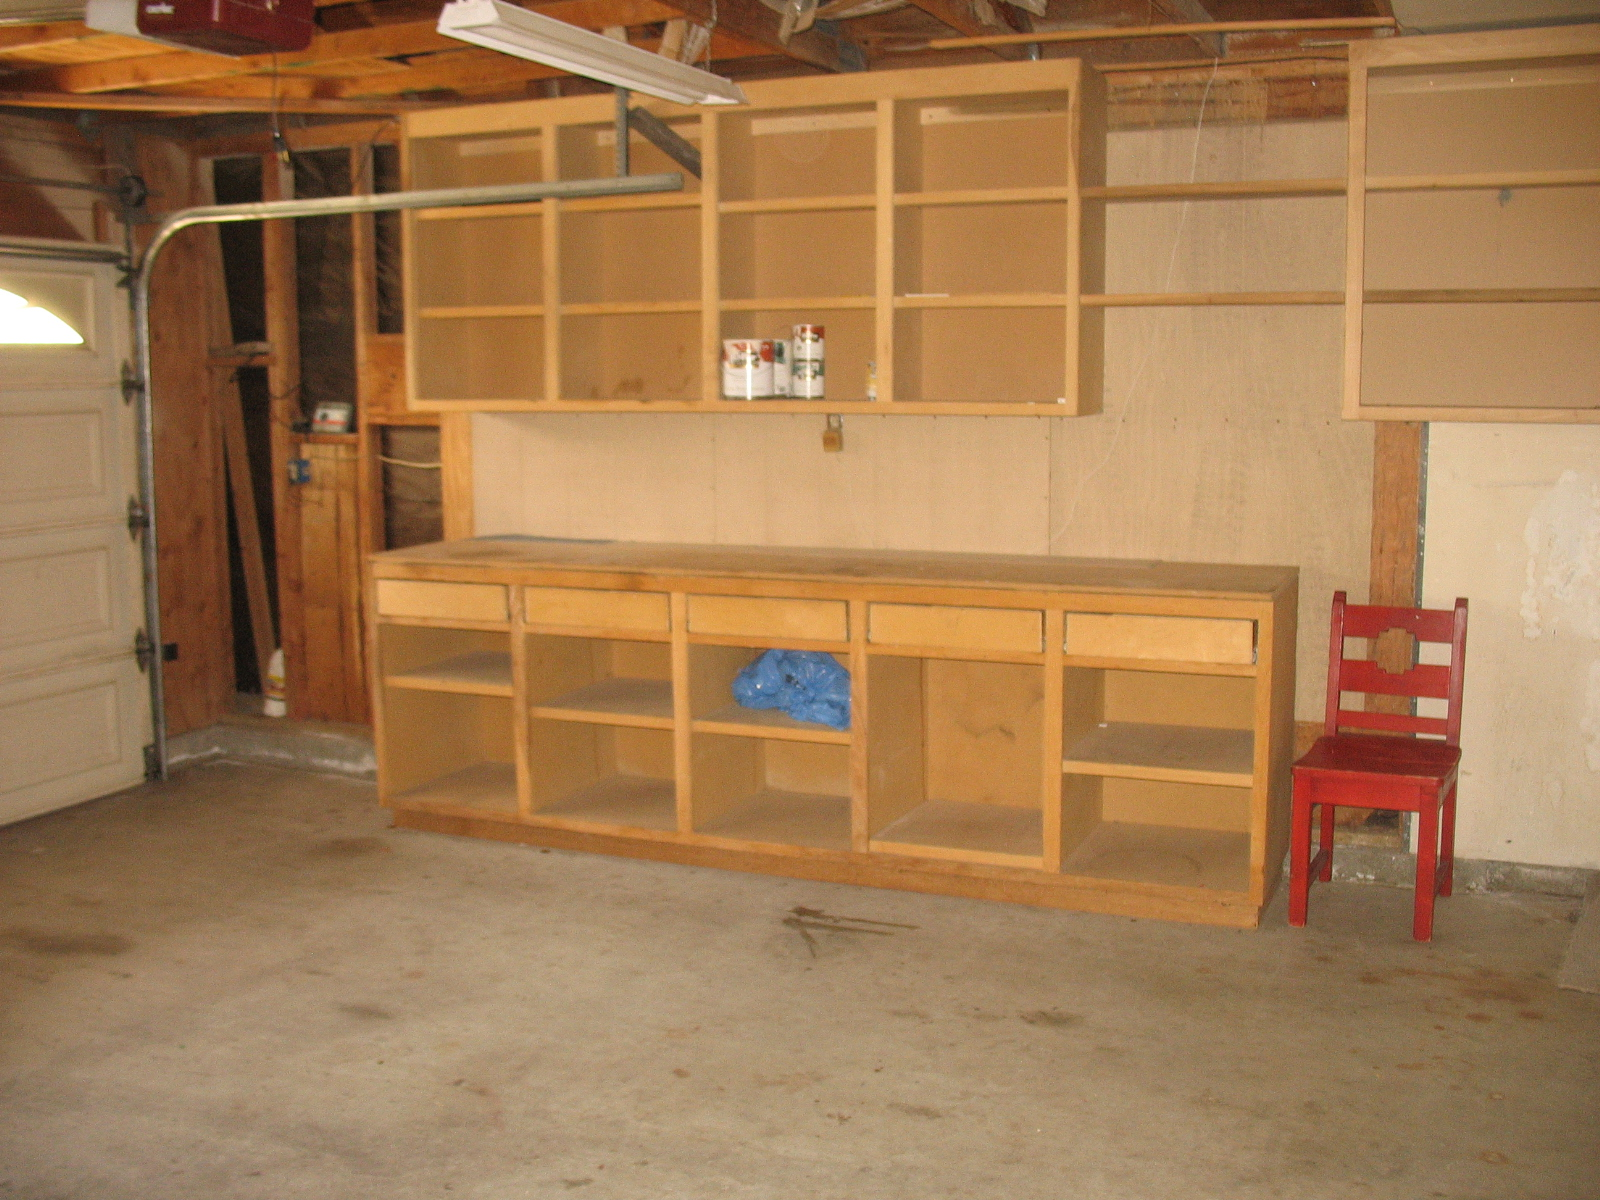 Garage Workbench Is A Good Way To Save Your Tools: Gorgeous Wooden Style Garage Workbench Storage Orgazation DEsign